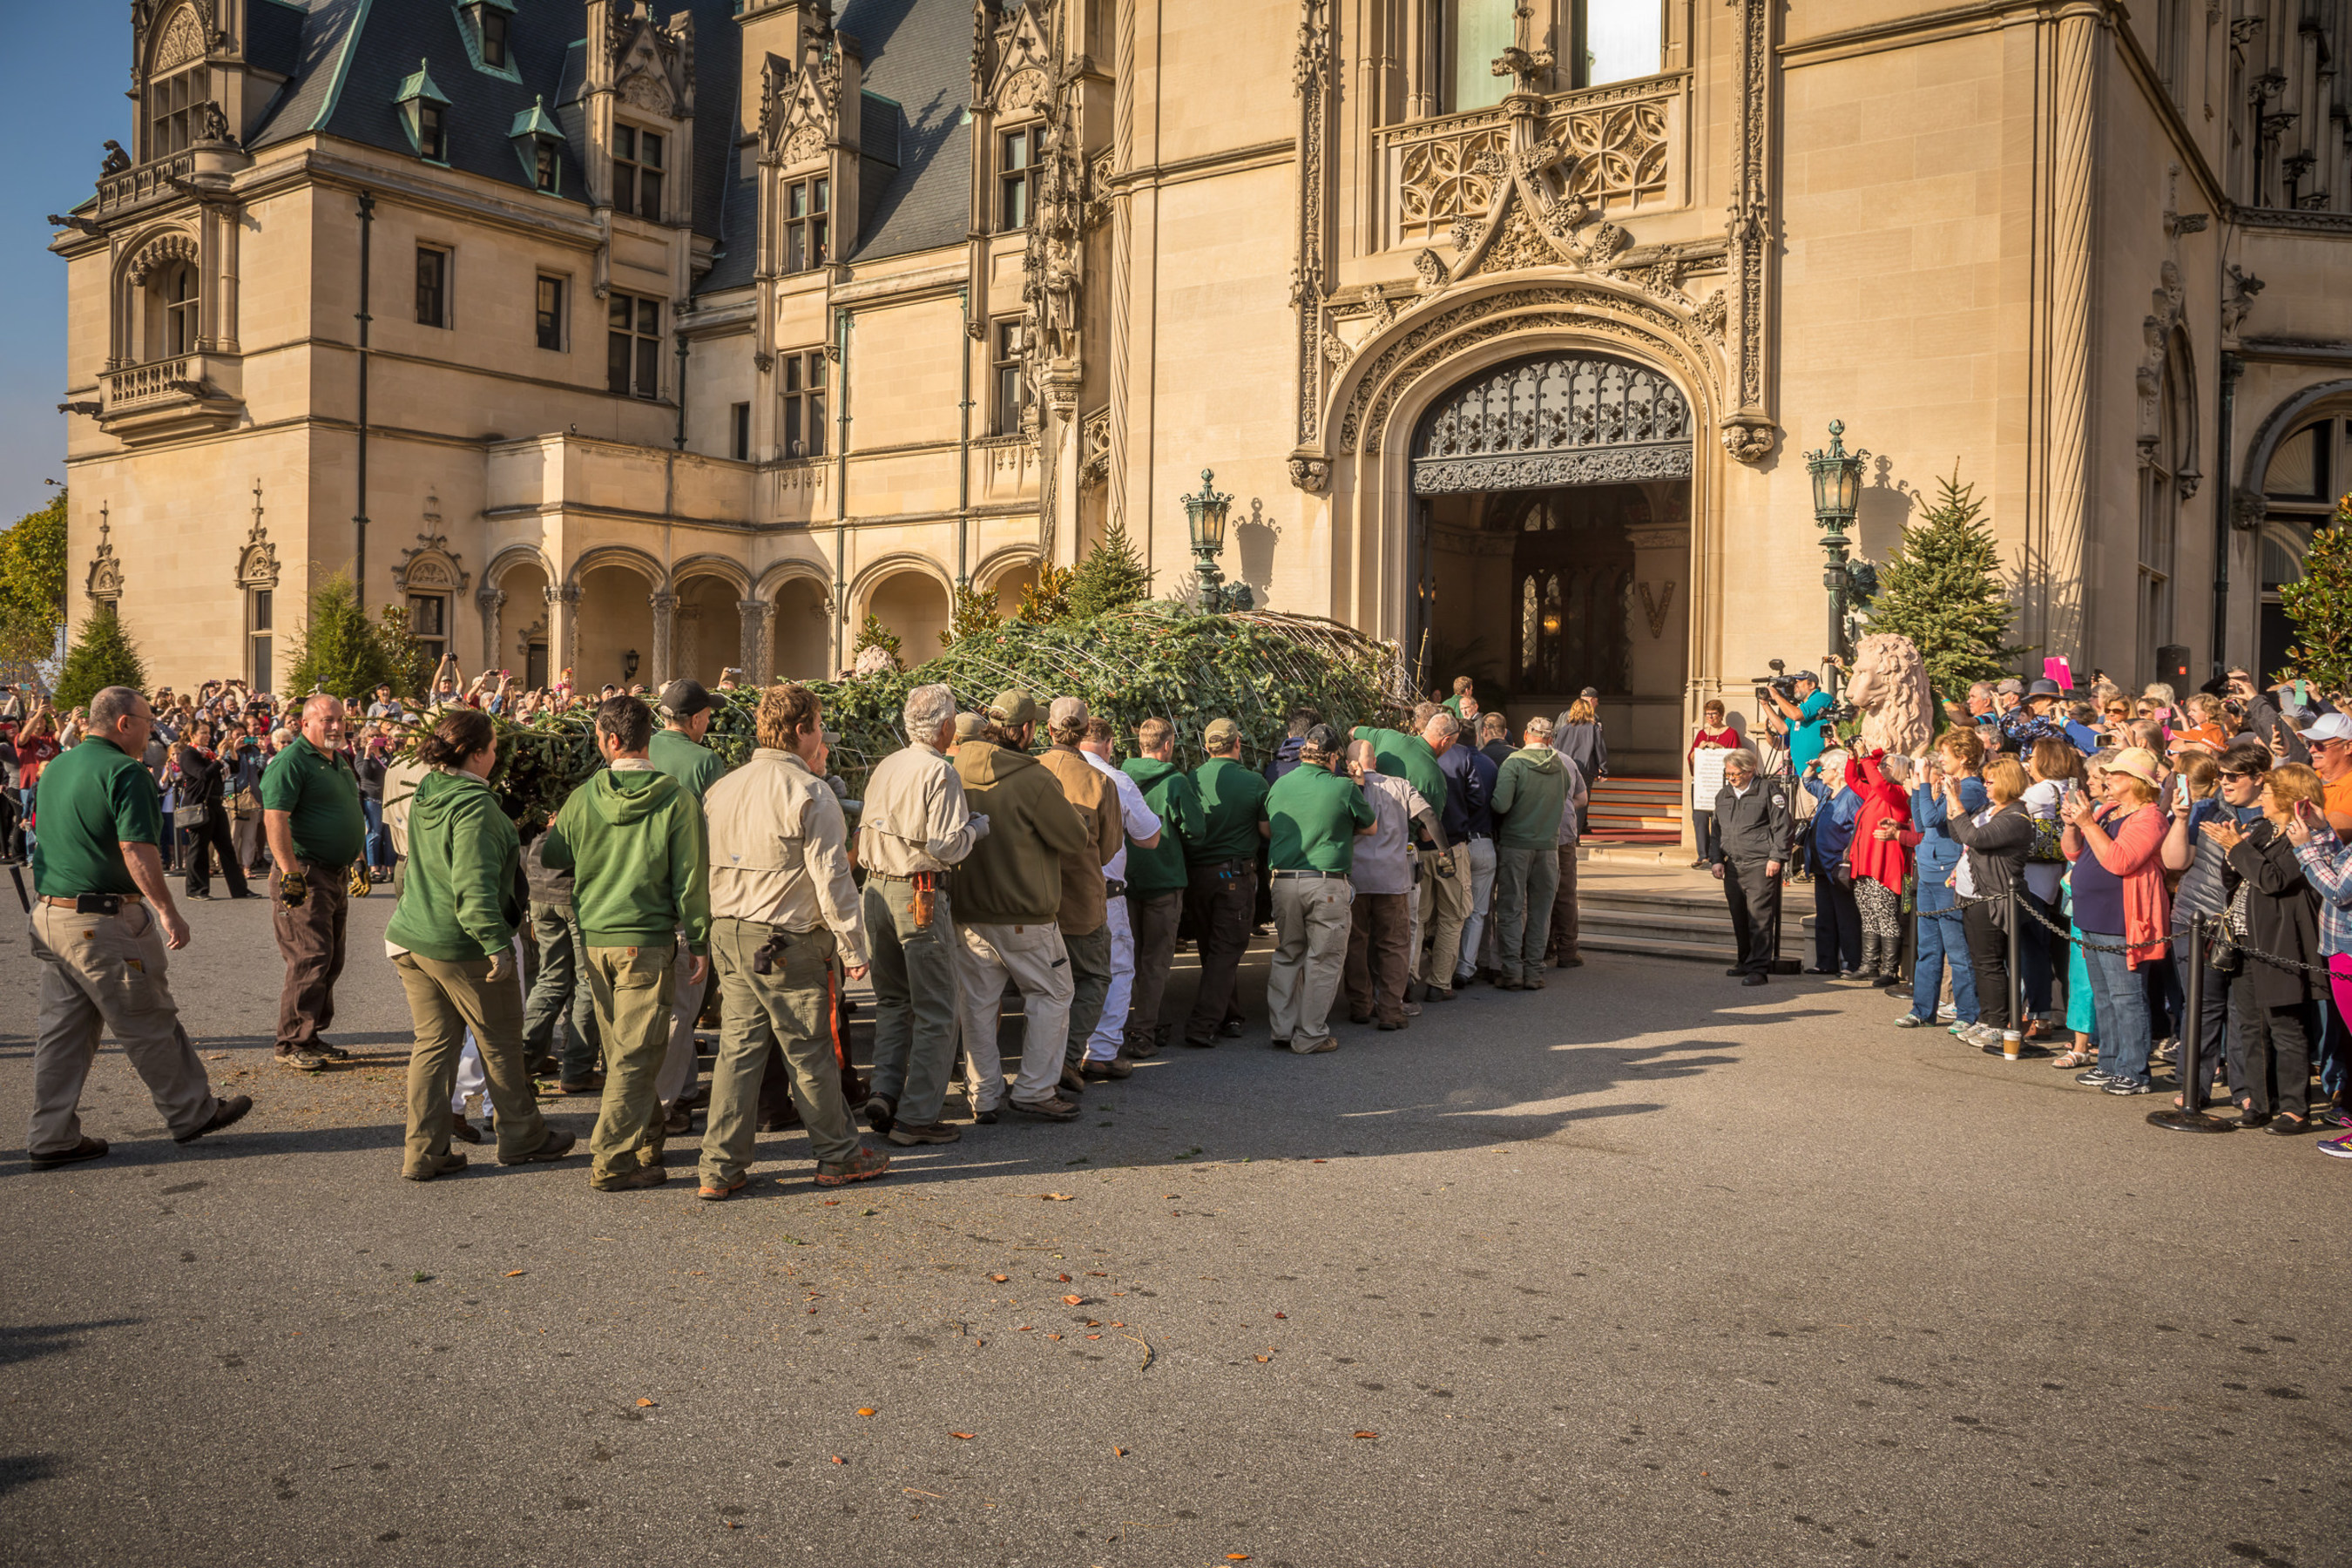 biltmore crew members work together to carry the 3500 pound fraser fir into biltmore house